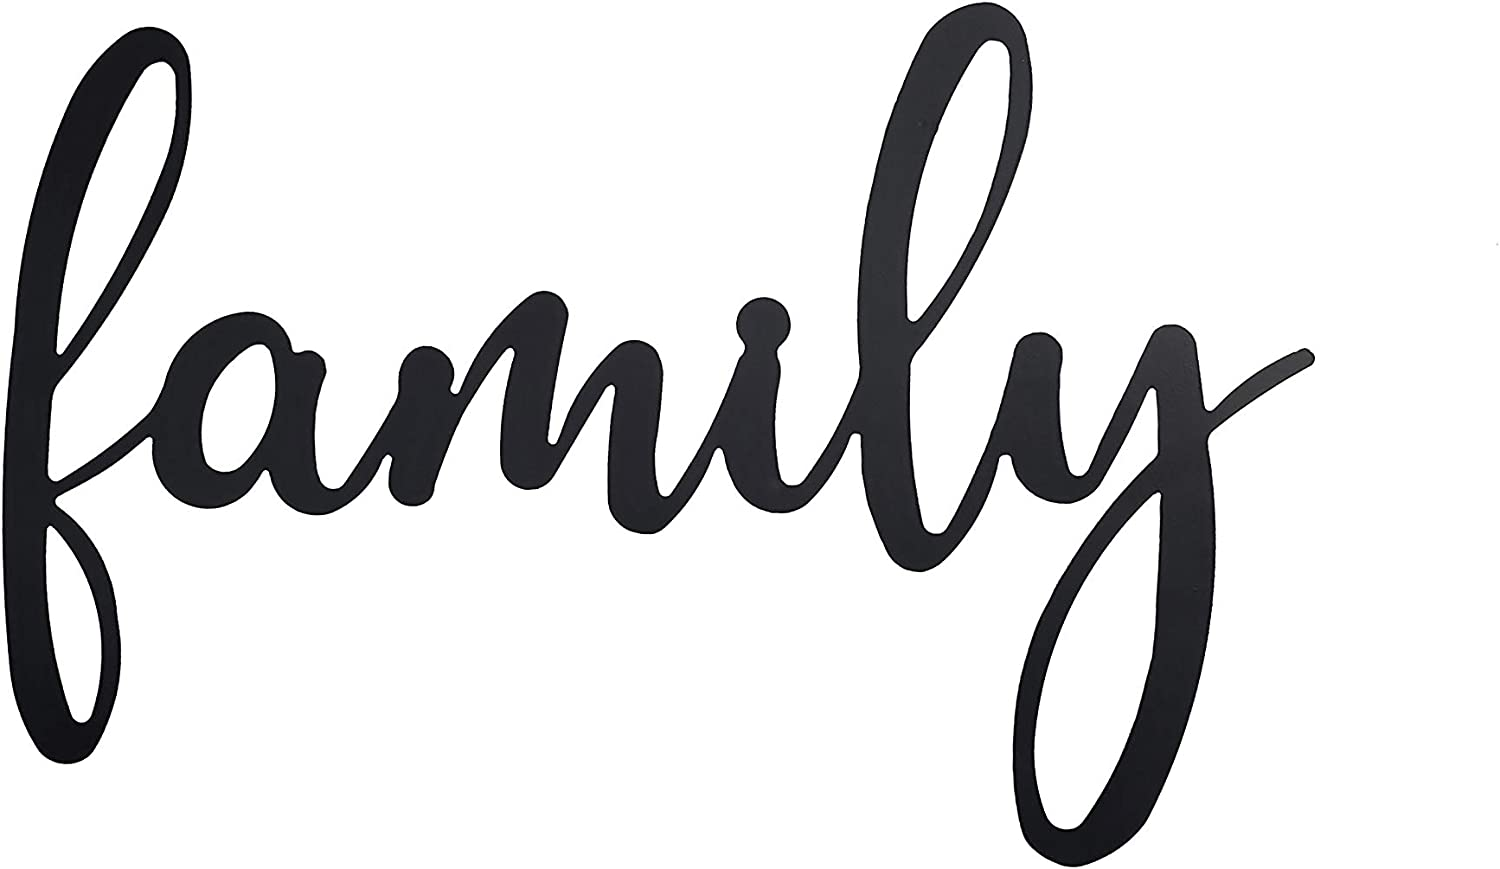 Metal Black Family Sign, Family Wall Decor, (16 x 10 1/4 x 1/16 inches)